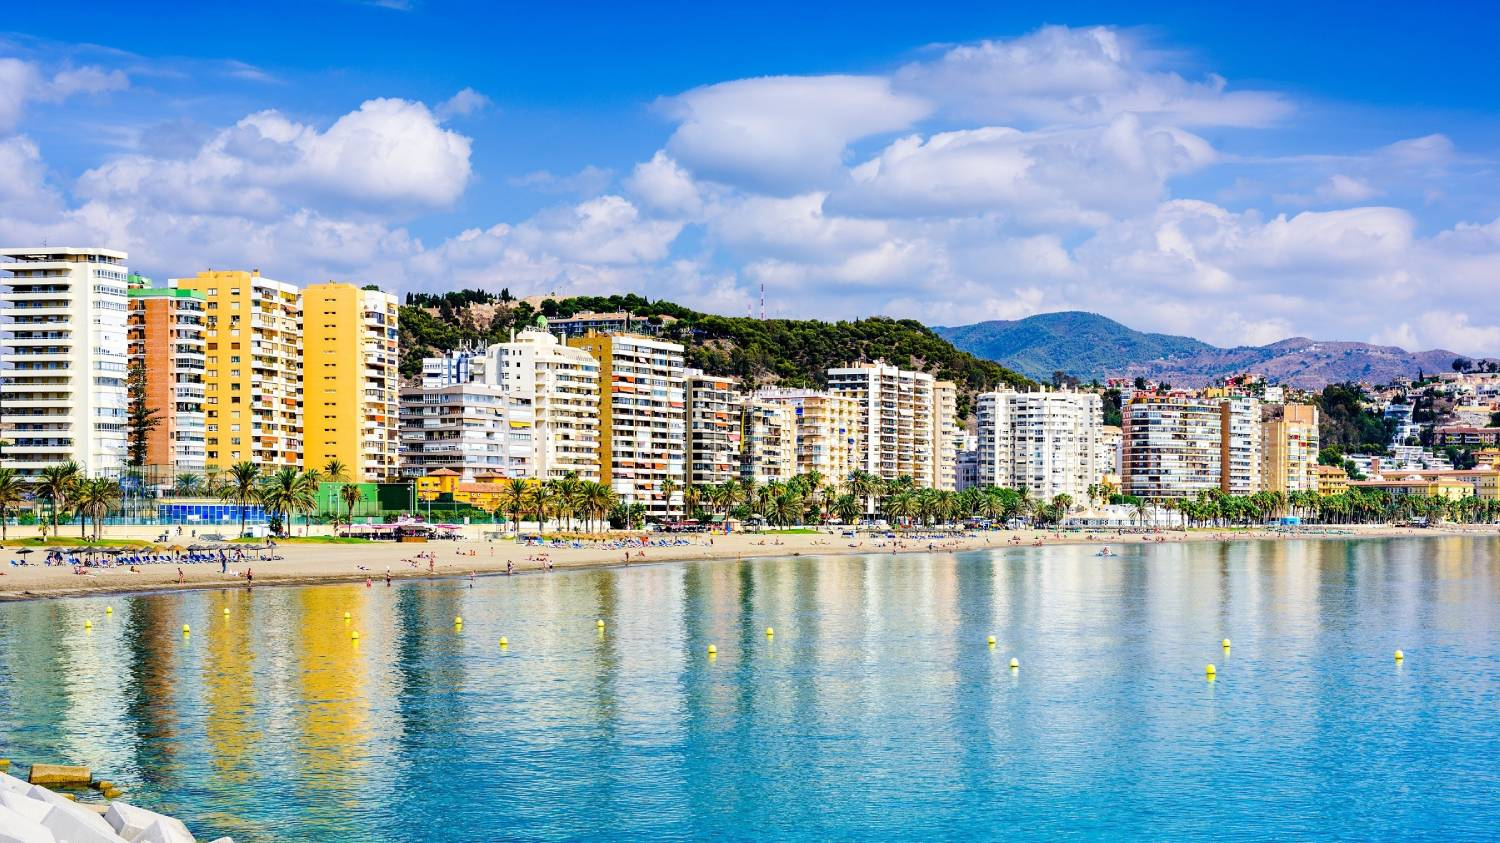 Malaga - The Best Places To Visit In Spain